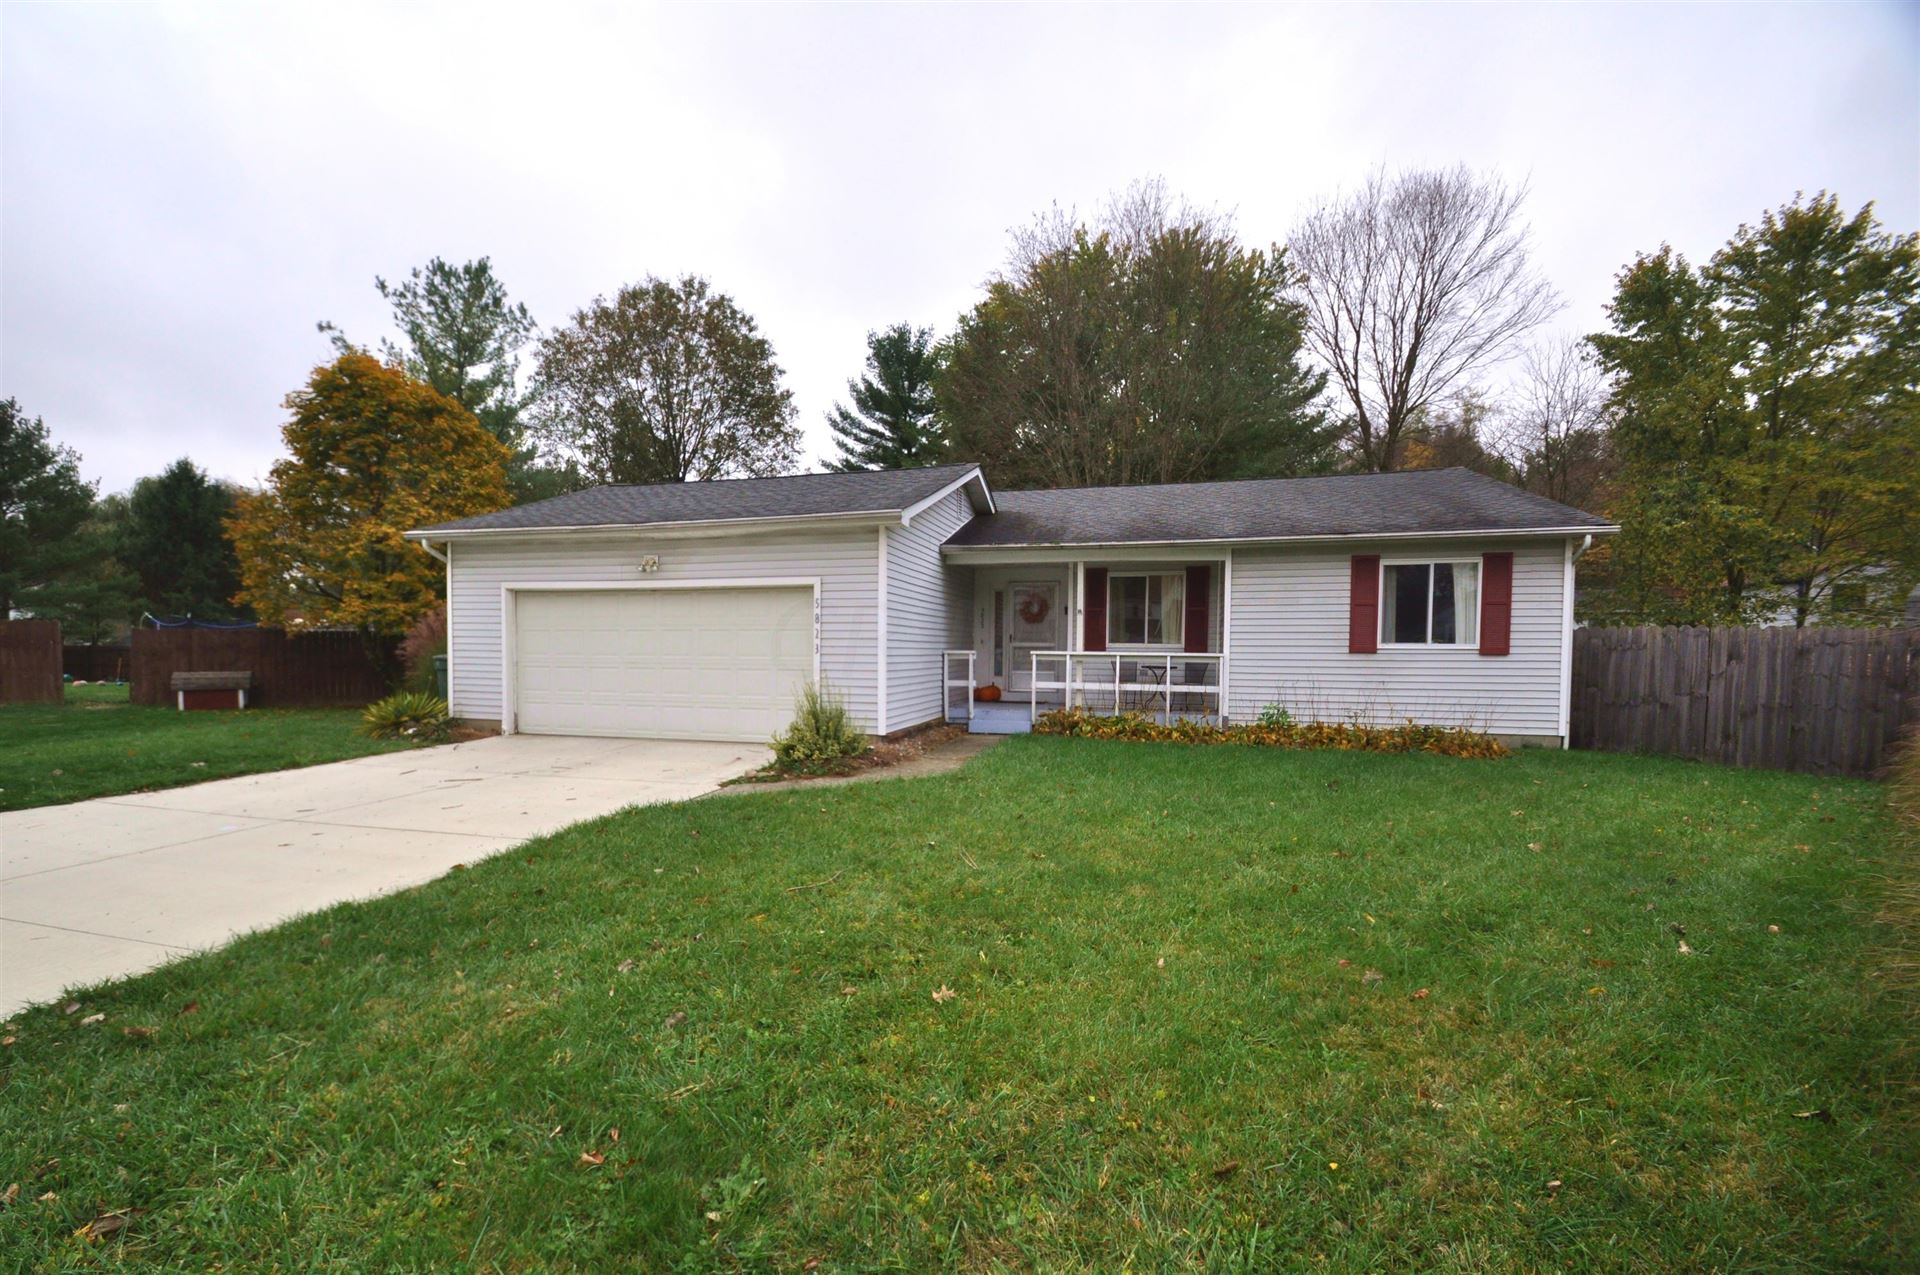 Photo of 5823 Stoneshead Court, Westerville, OH 43081 (MLS # 220038002)